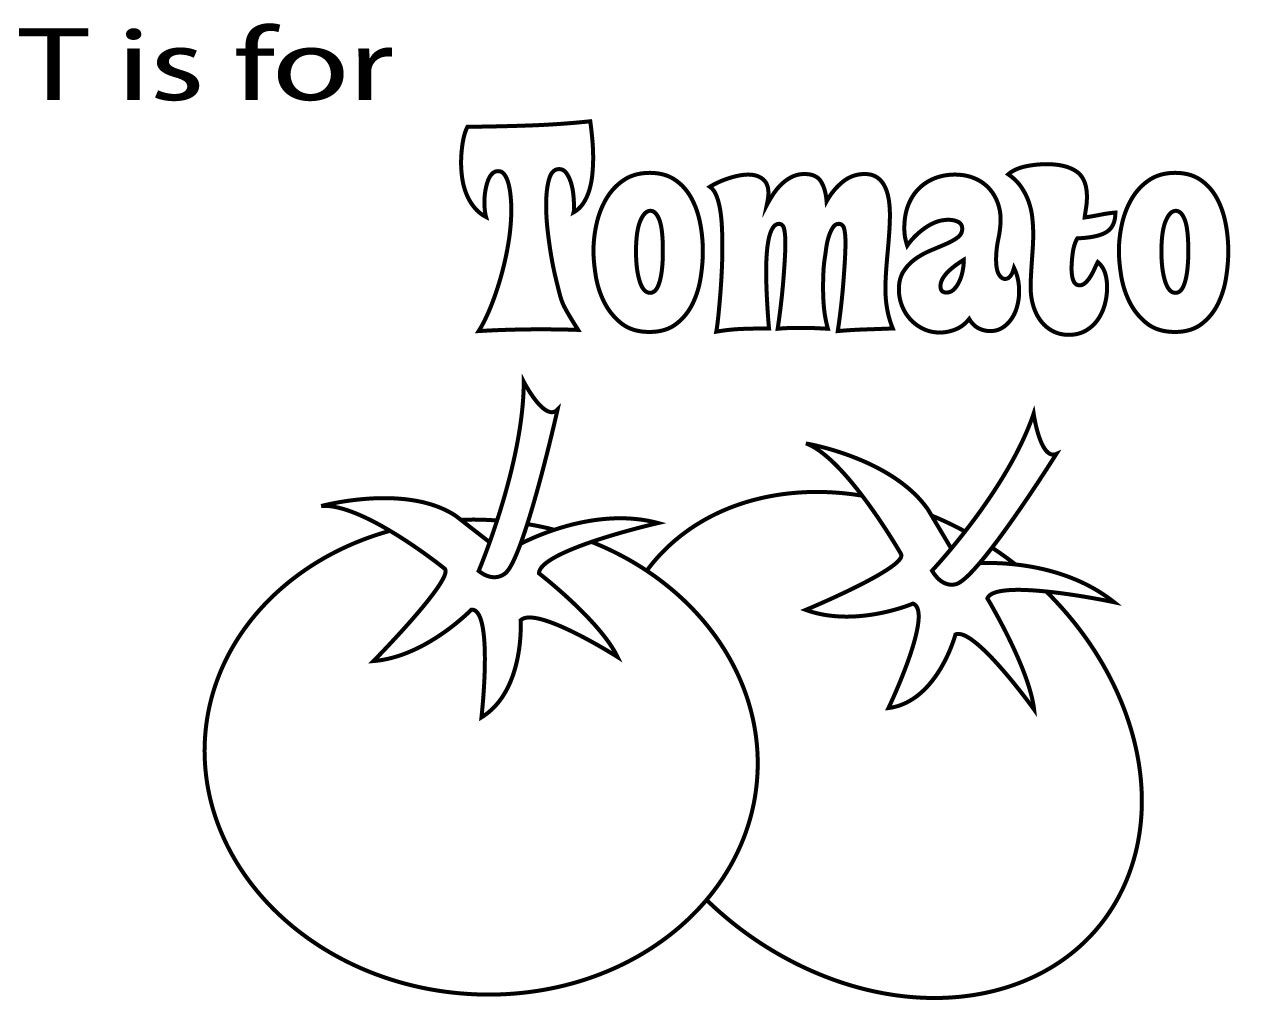 Best And Easy Letter T Coloring Page For Kids Coloring Pages